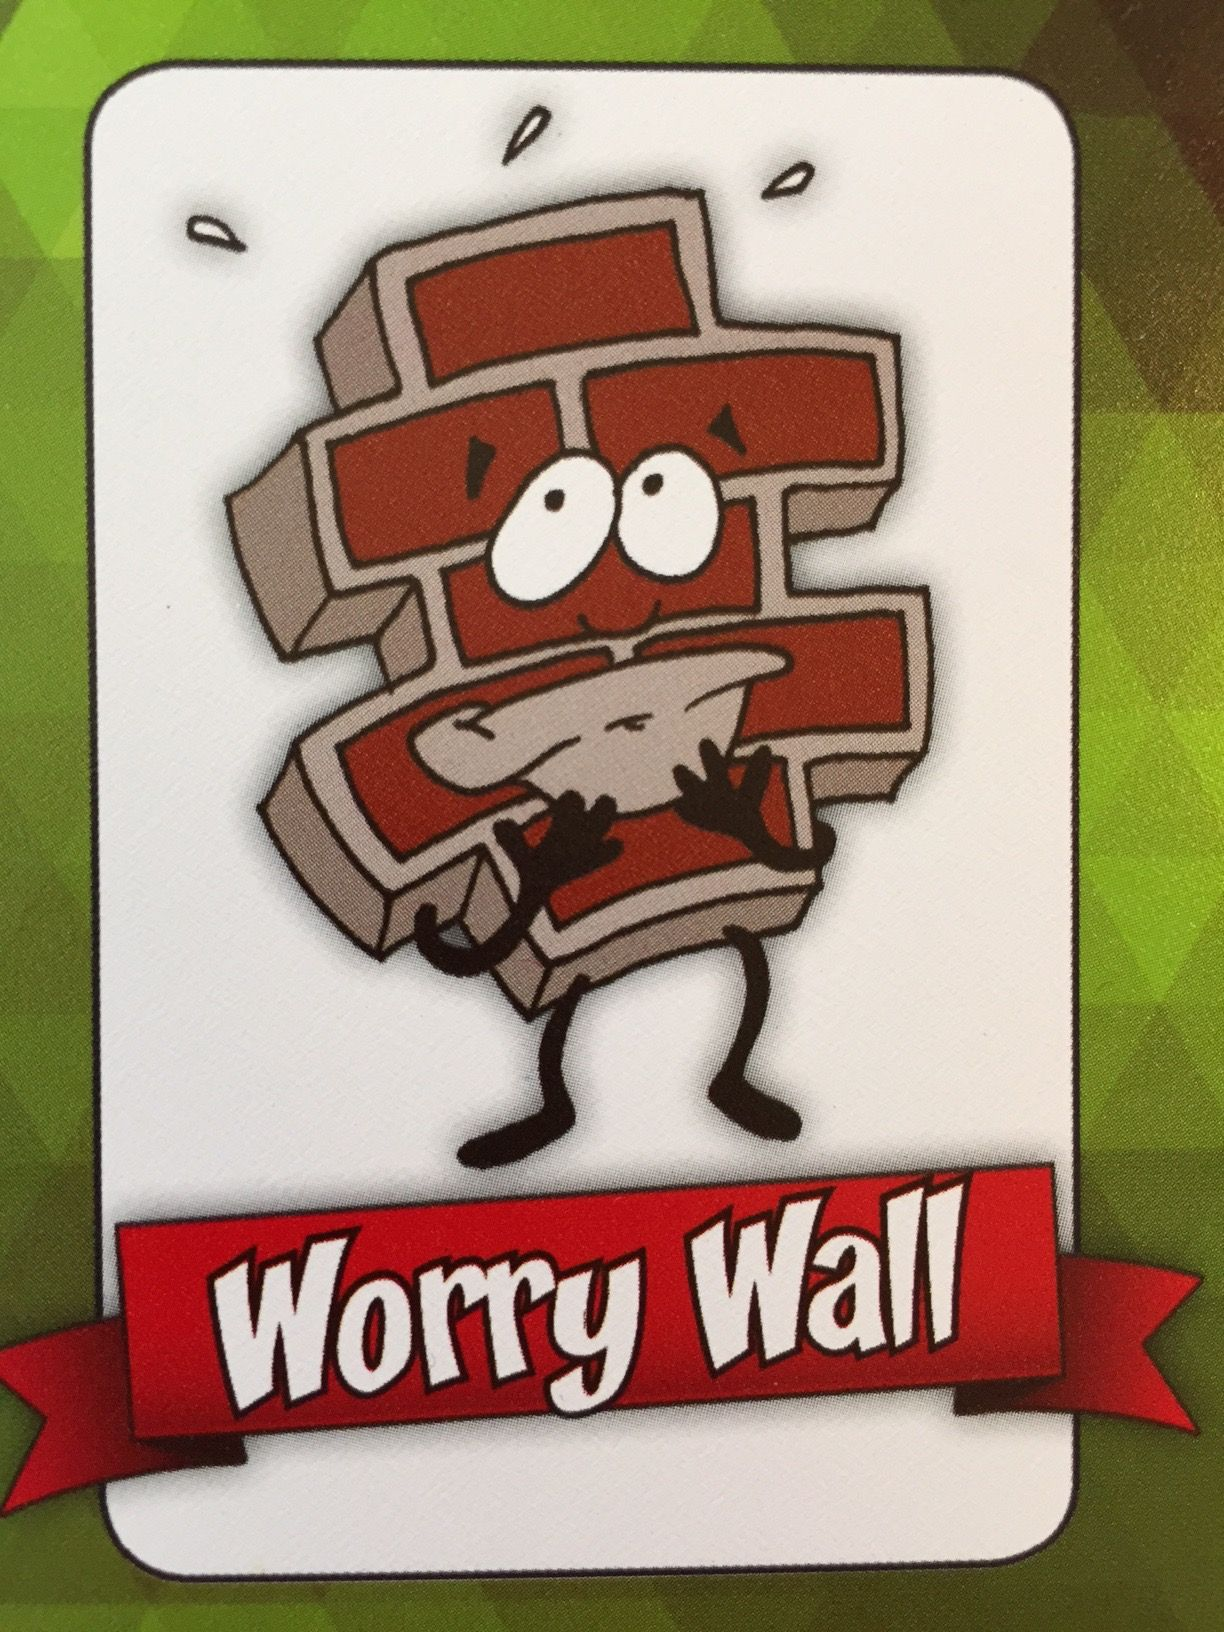 Worry Wall I Make People Worry Too Much